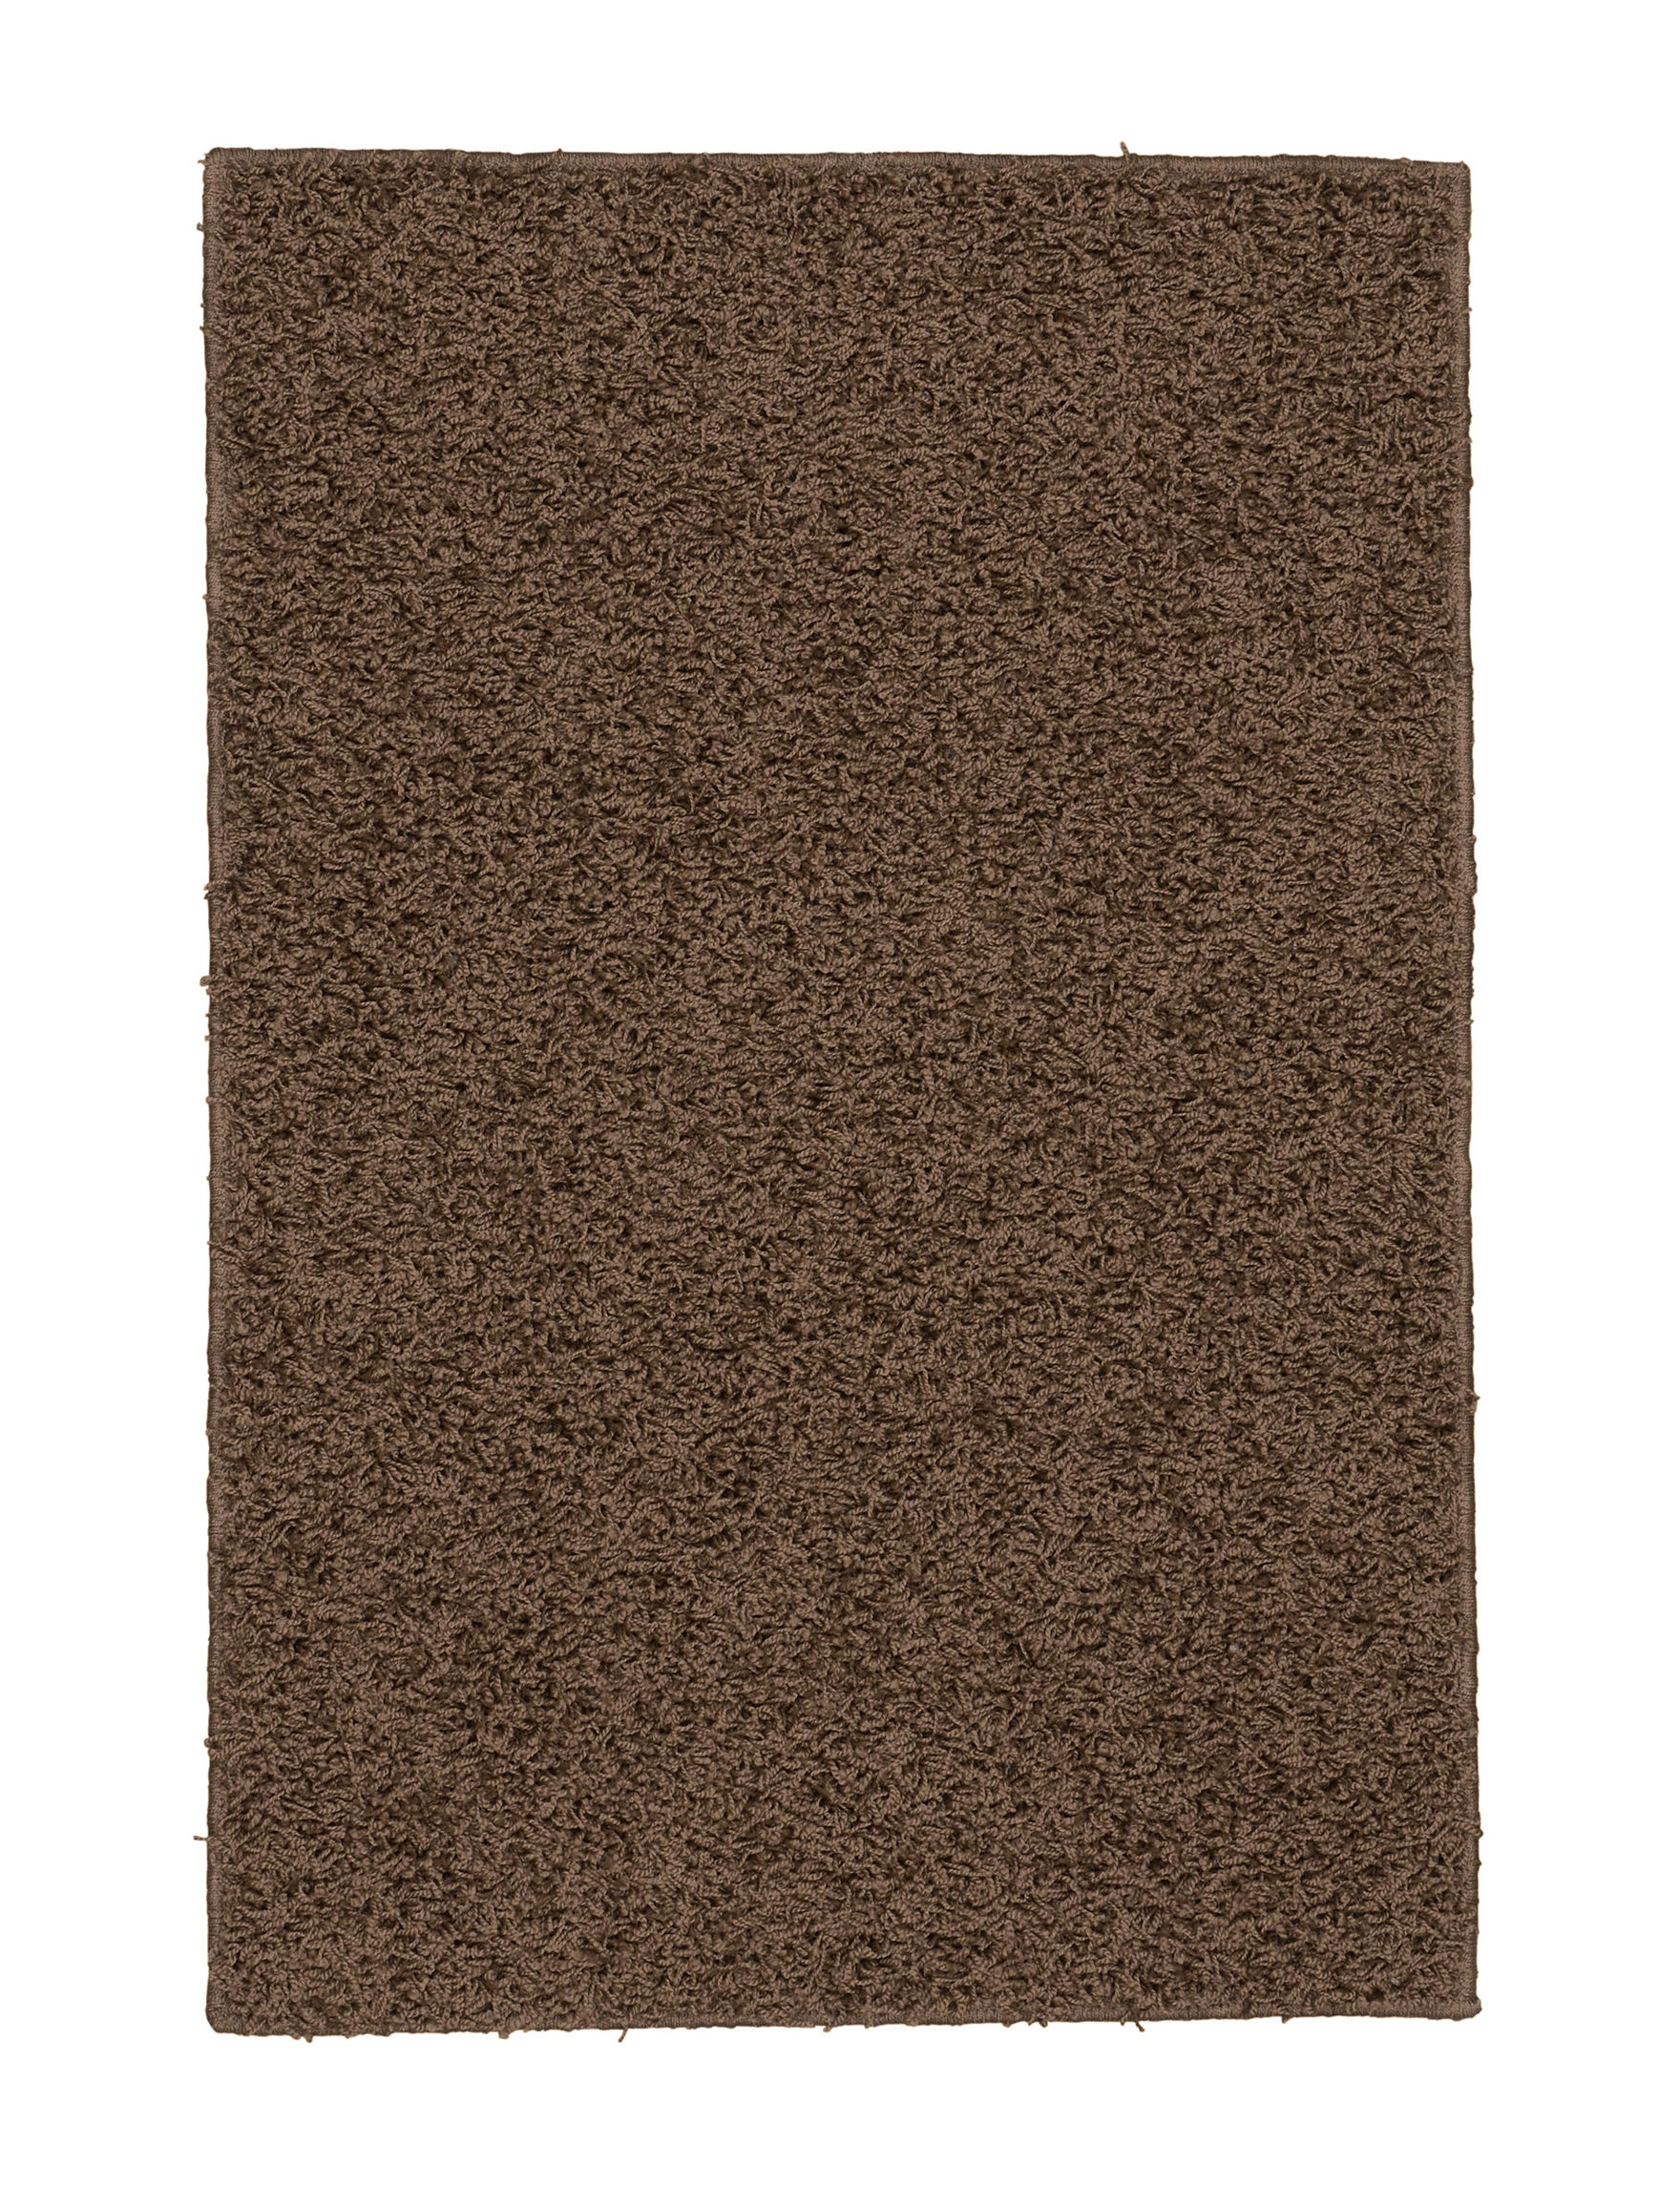 Garland Rug Brown Accent Rugs Area Rugs Rugs